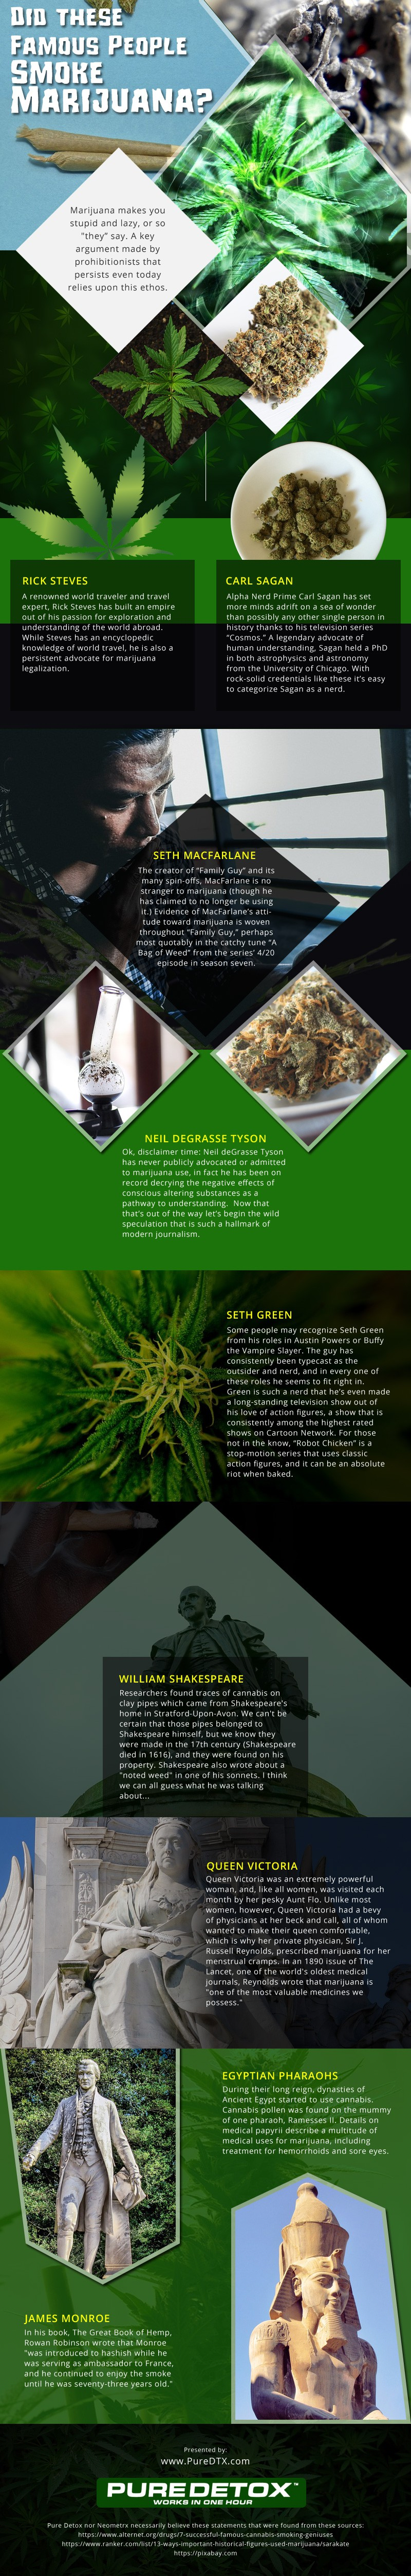 Famous-People-Who-Smoke-Marijuana Infographic